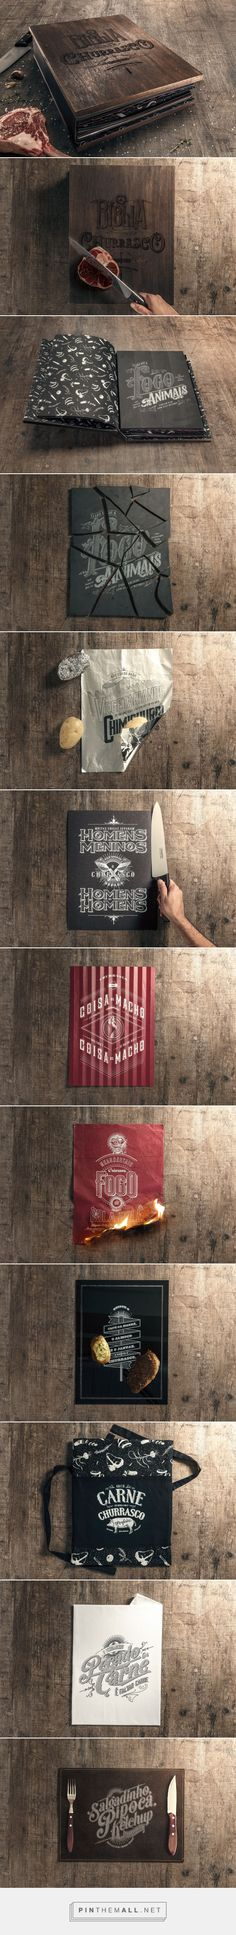 The Bible of Barbecue on Behance - created via https://pinthemall.net